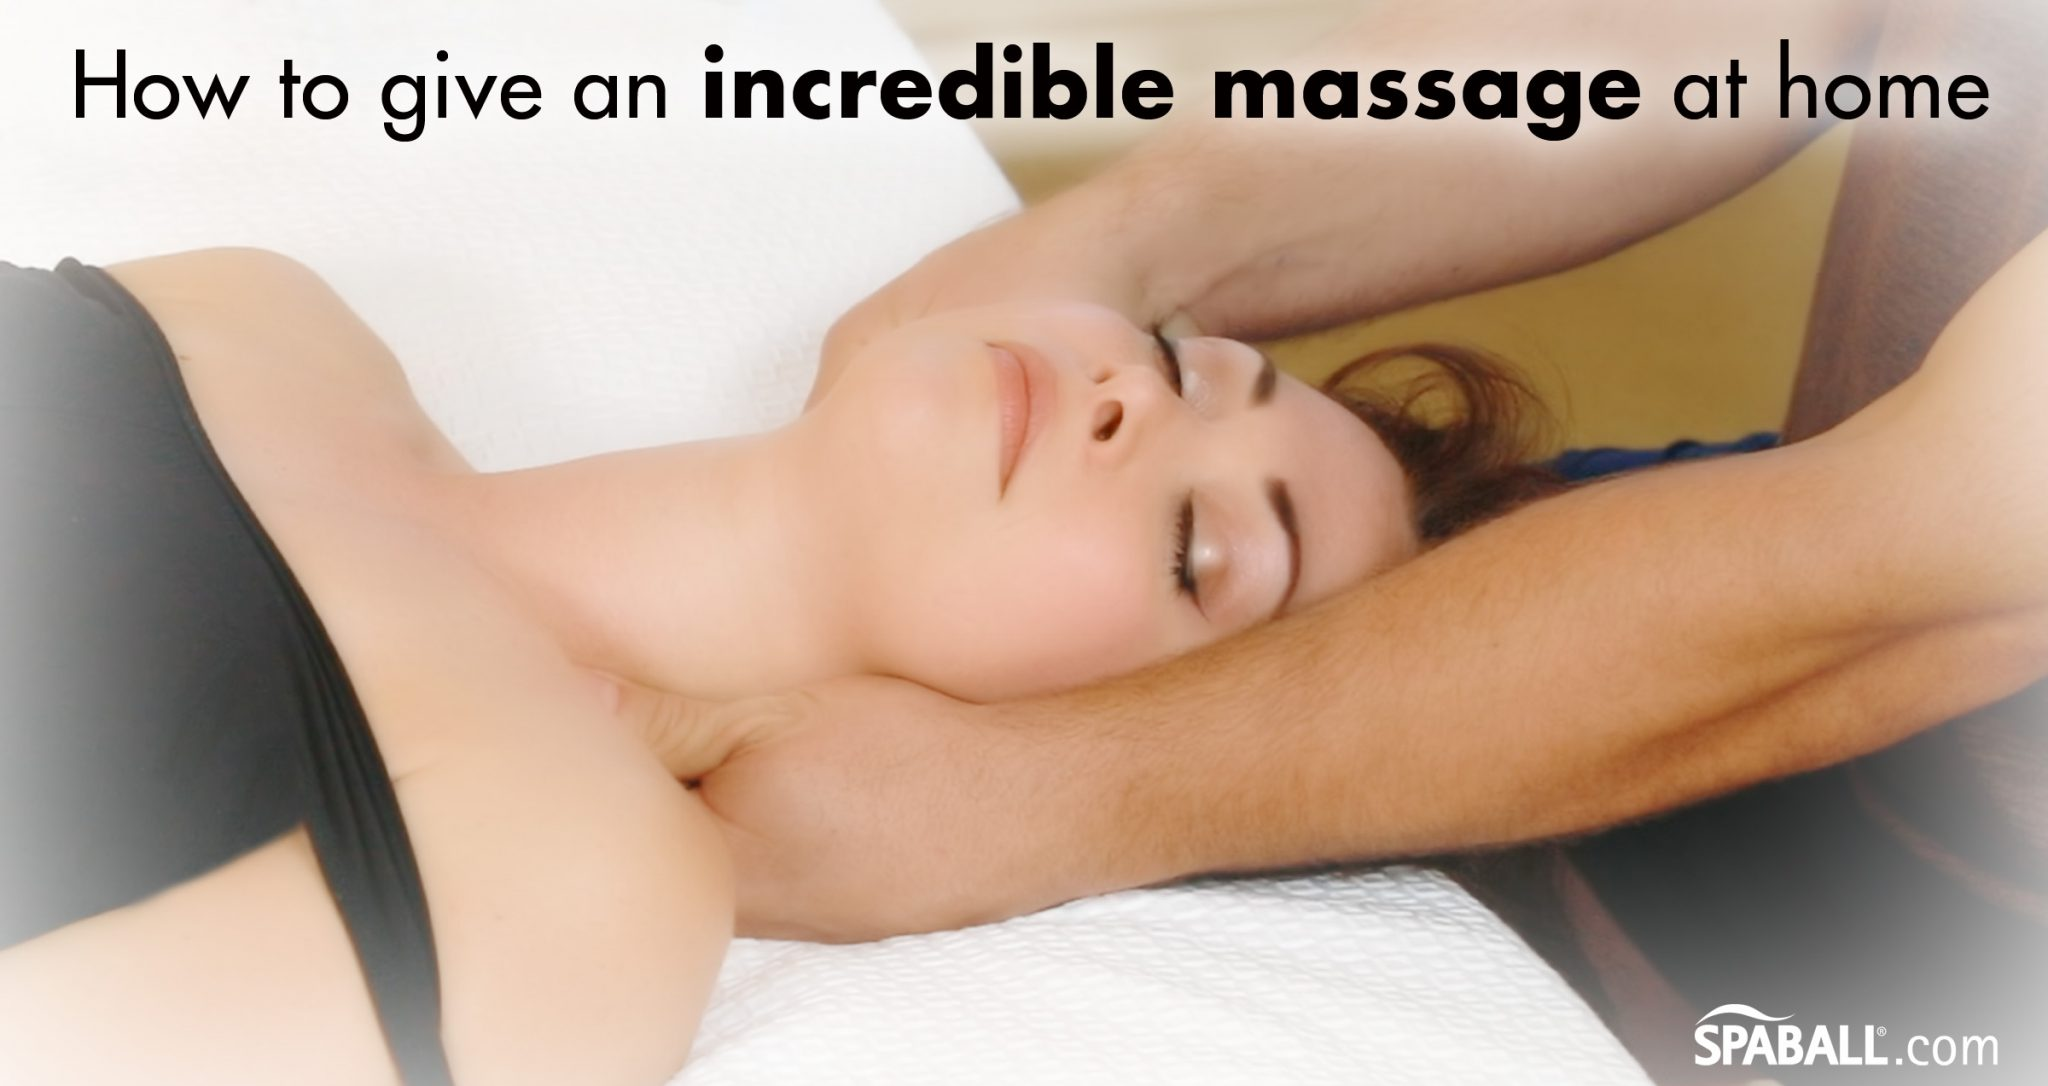 7 TIPS: How to give an incredible massage